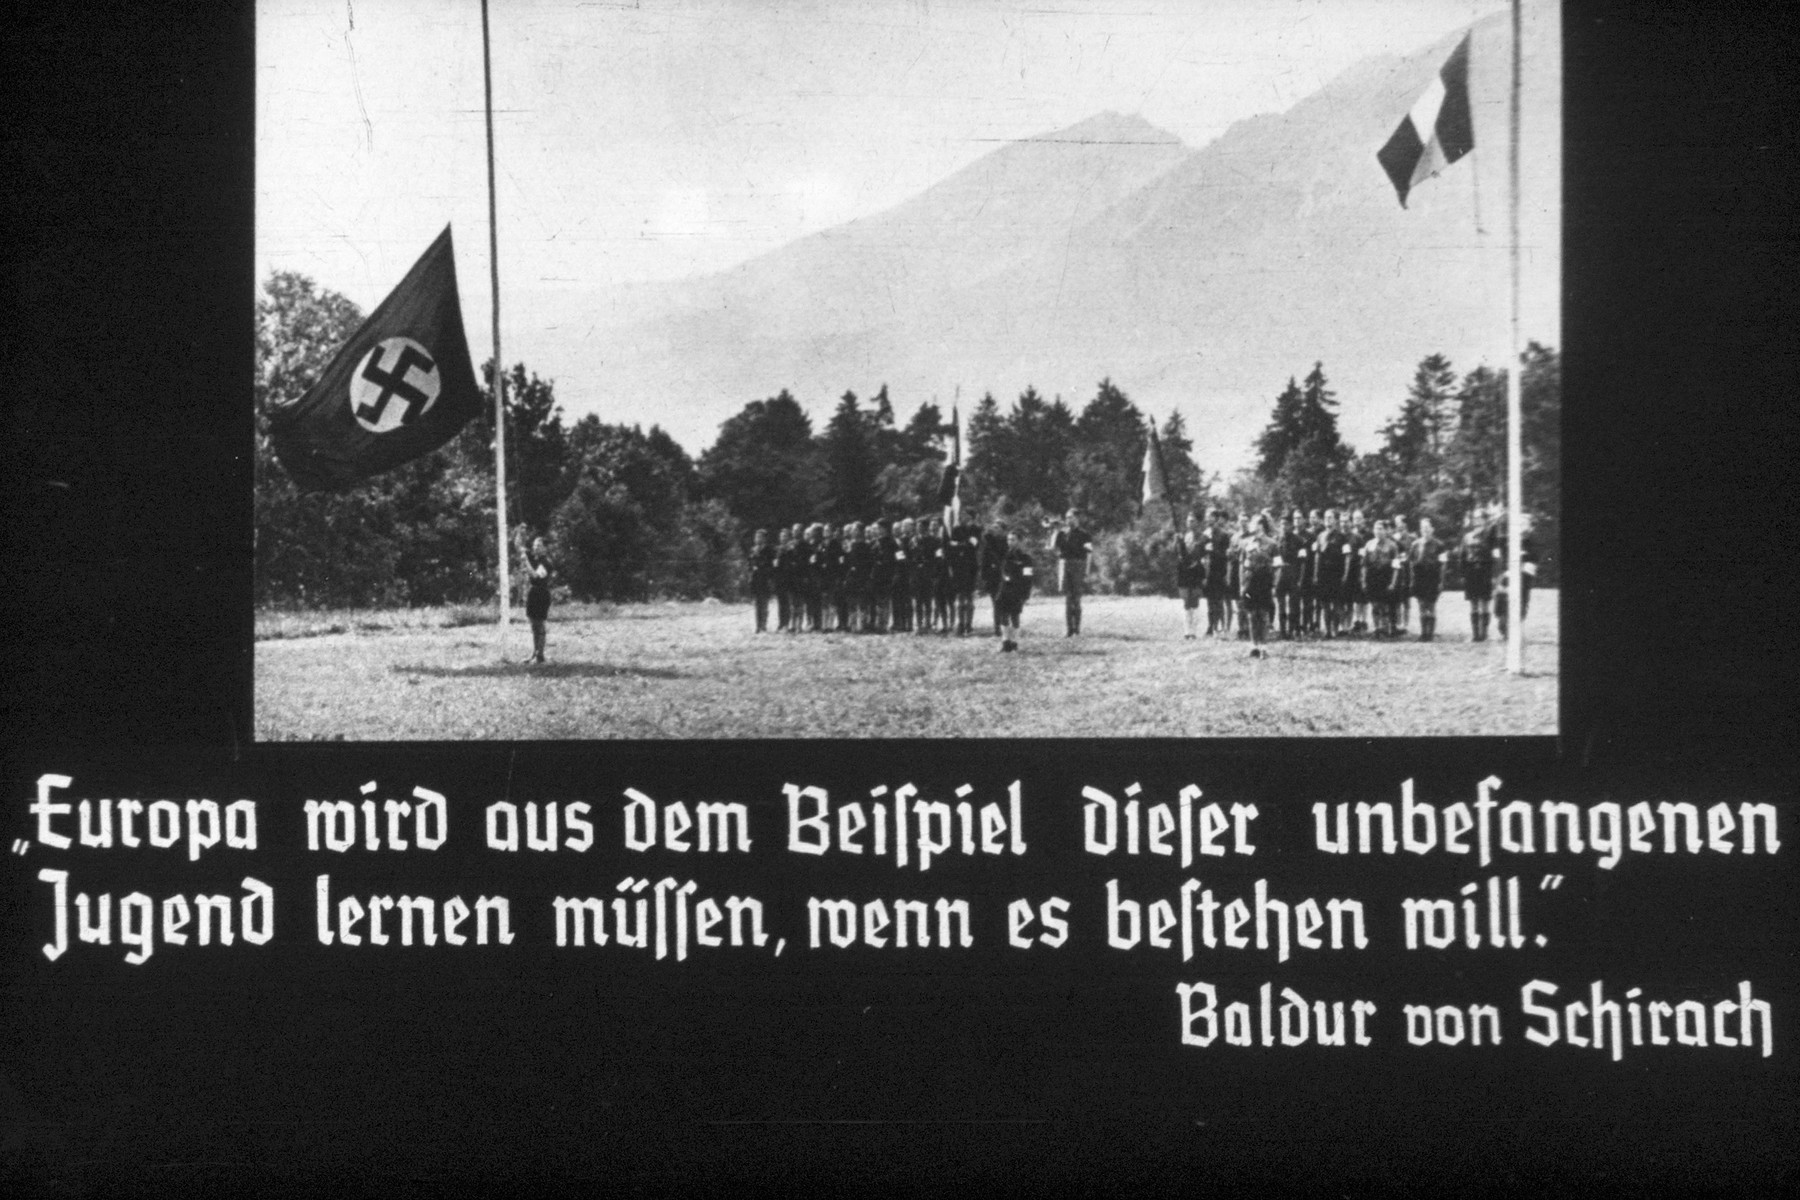 "1st slide from a Hitler Youth slideshow about the aftermath of WWI, Versailles, how it was overcome and the rise of Nazism.  Slide shows a flag raising of the Hitler Youth. Quotation by Balder von Schirach reads:  ""Europa wird aus dem Beispiel dieser unbefangenen Jugend lernen mussen, wenn es bestehen will. ""  ""Europe shall learn from the unprejudiced youth."""